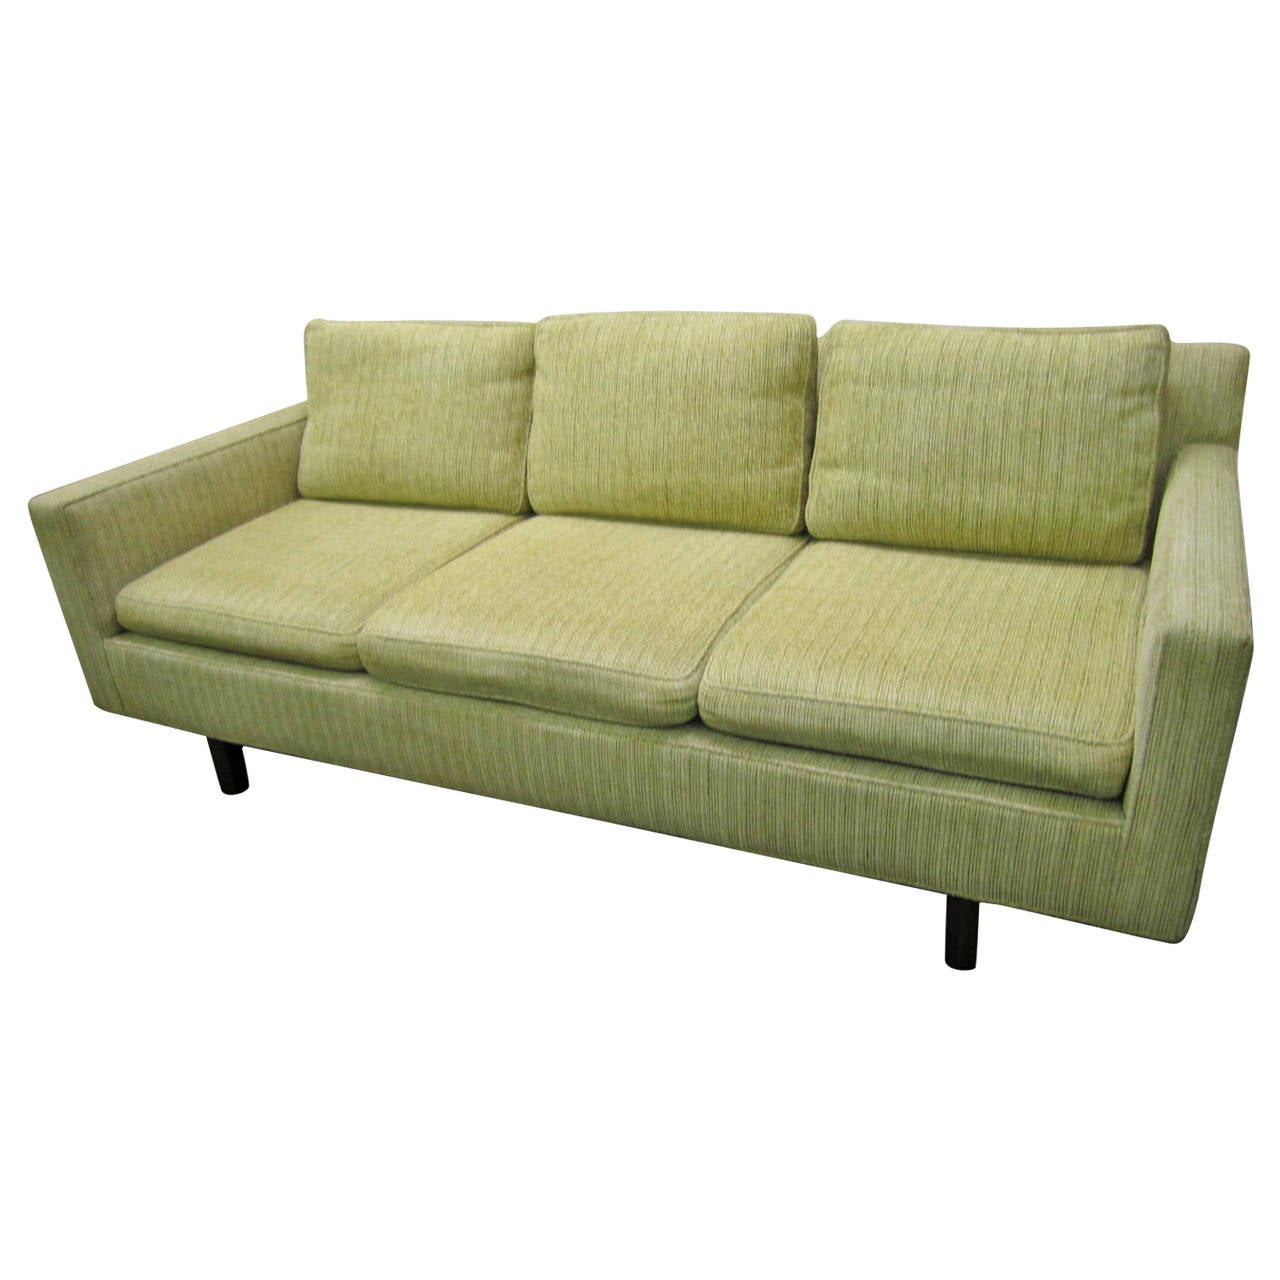 Cost To Reupholster A Sectional Sofa Hereo Sofa: cost to reupholster loveseat